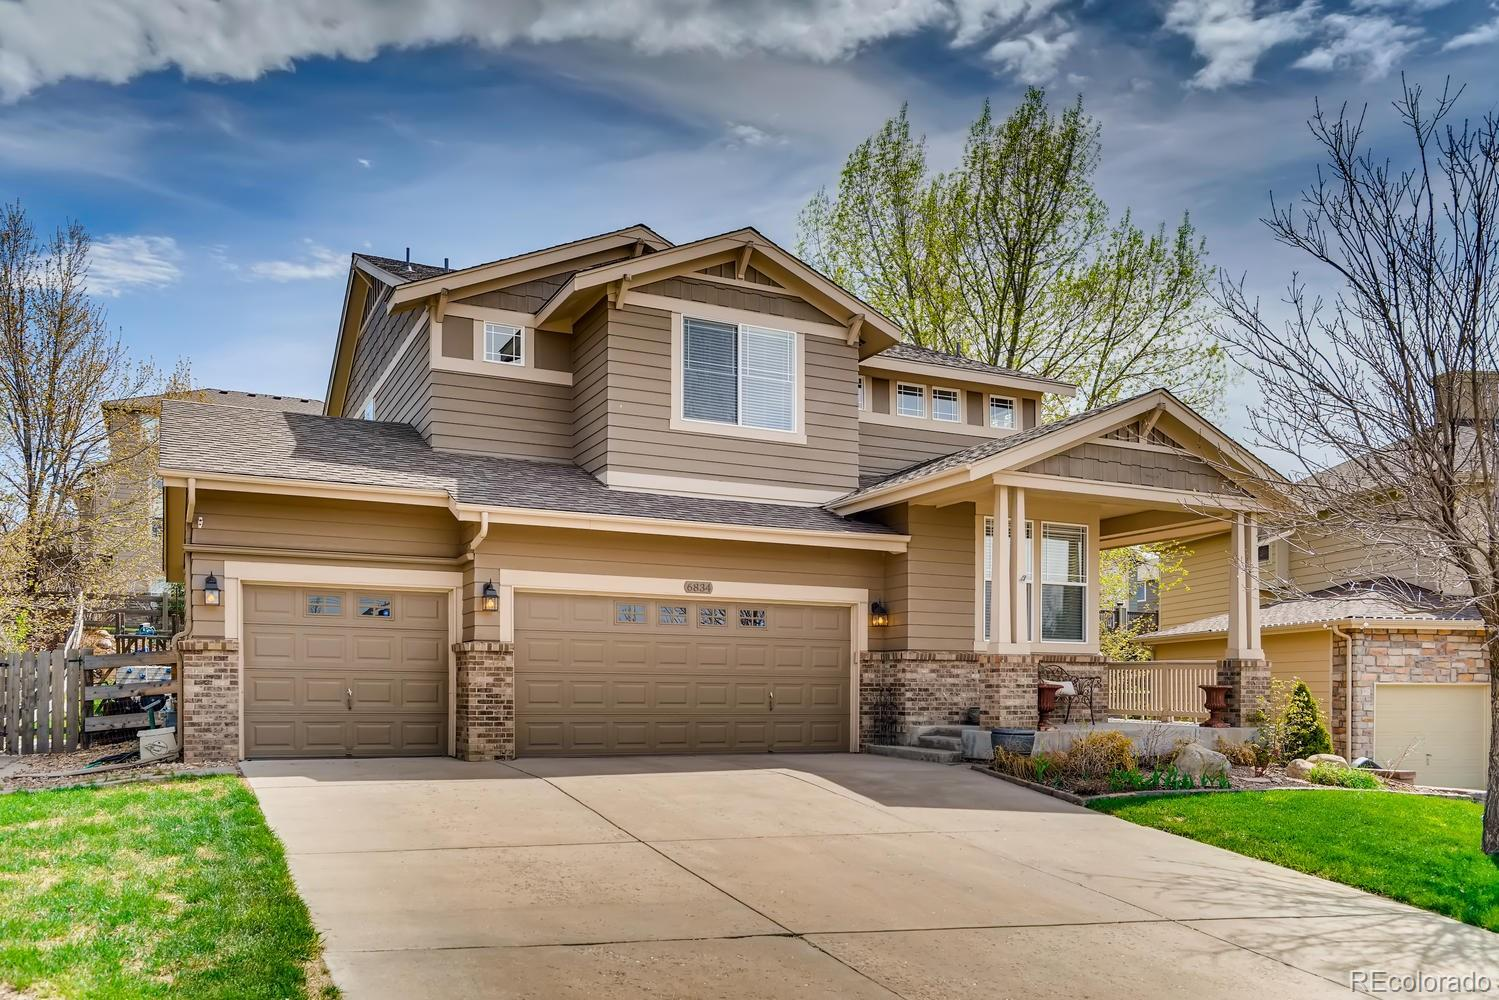 Welcome to your beautiful home in the Castle Pines North neighborhood! Located on the corner of an elevated cul-de-sac, it provides peaceful relaxation and beautiful views of the mountains and DTC.  This recently updated home feels fresh and modern with beautifully finished hard wood floors and newer paint throughout the main level. The open floor plan, with an abundance of natural light, is warm and inviting. Your updated kitchen is a chef's dream and perfect for entertaining; complete with cherry cabinets, granite countertops, stainless steel appliances, large island, and inlayed tile backsplash.  As you step outside, a spacious backyard awaits with a new paver patio, a custom designed sitting area, and mountain views. Other features include new water heater, master suite with mountain views, a large upstairs loft and a massive three-car garage with ample storage for bikes, tools, and all your toys.  You're just a short walk from numerous neighborhood amenities, such as the pool/clubhouse, Coyote Ridge Park, community events/music festivals, miles of trails for biking and hiking, and Daniel's Gate park. There's always something to keep you busy!  The central location provides easy access to I-25, C-470, DTC, and downtown Denver.